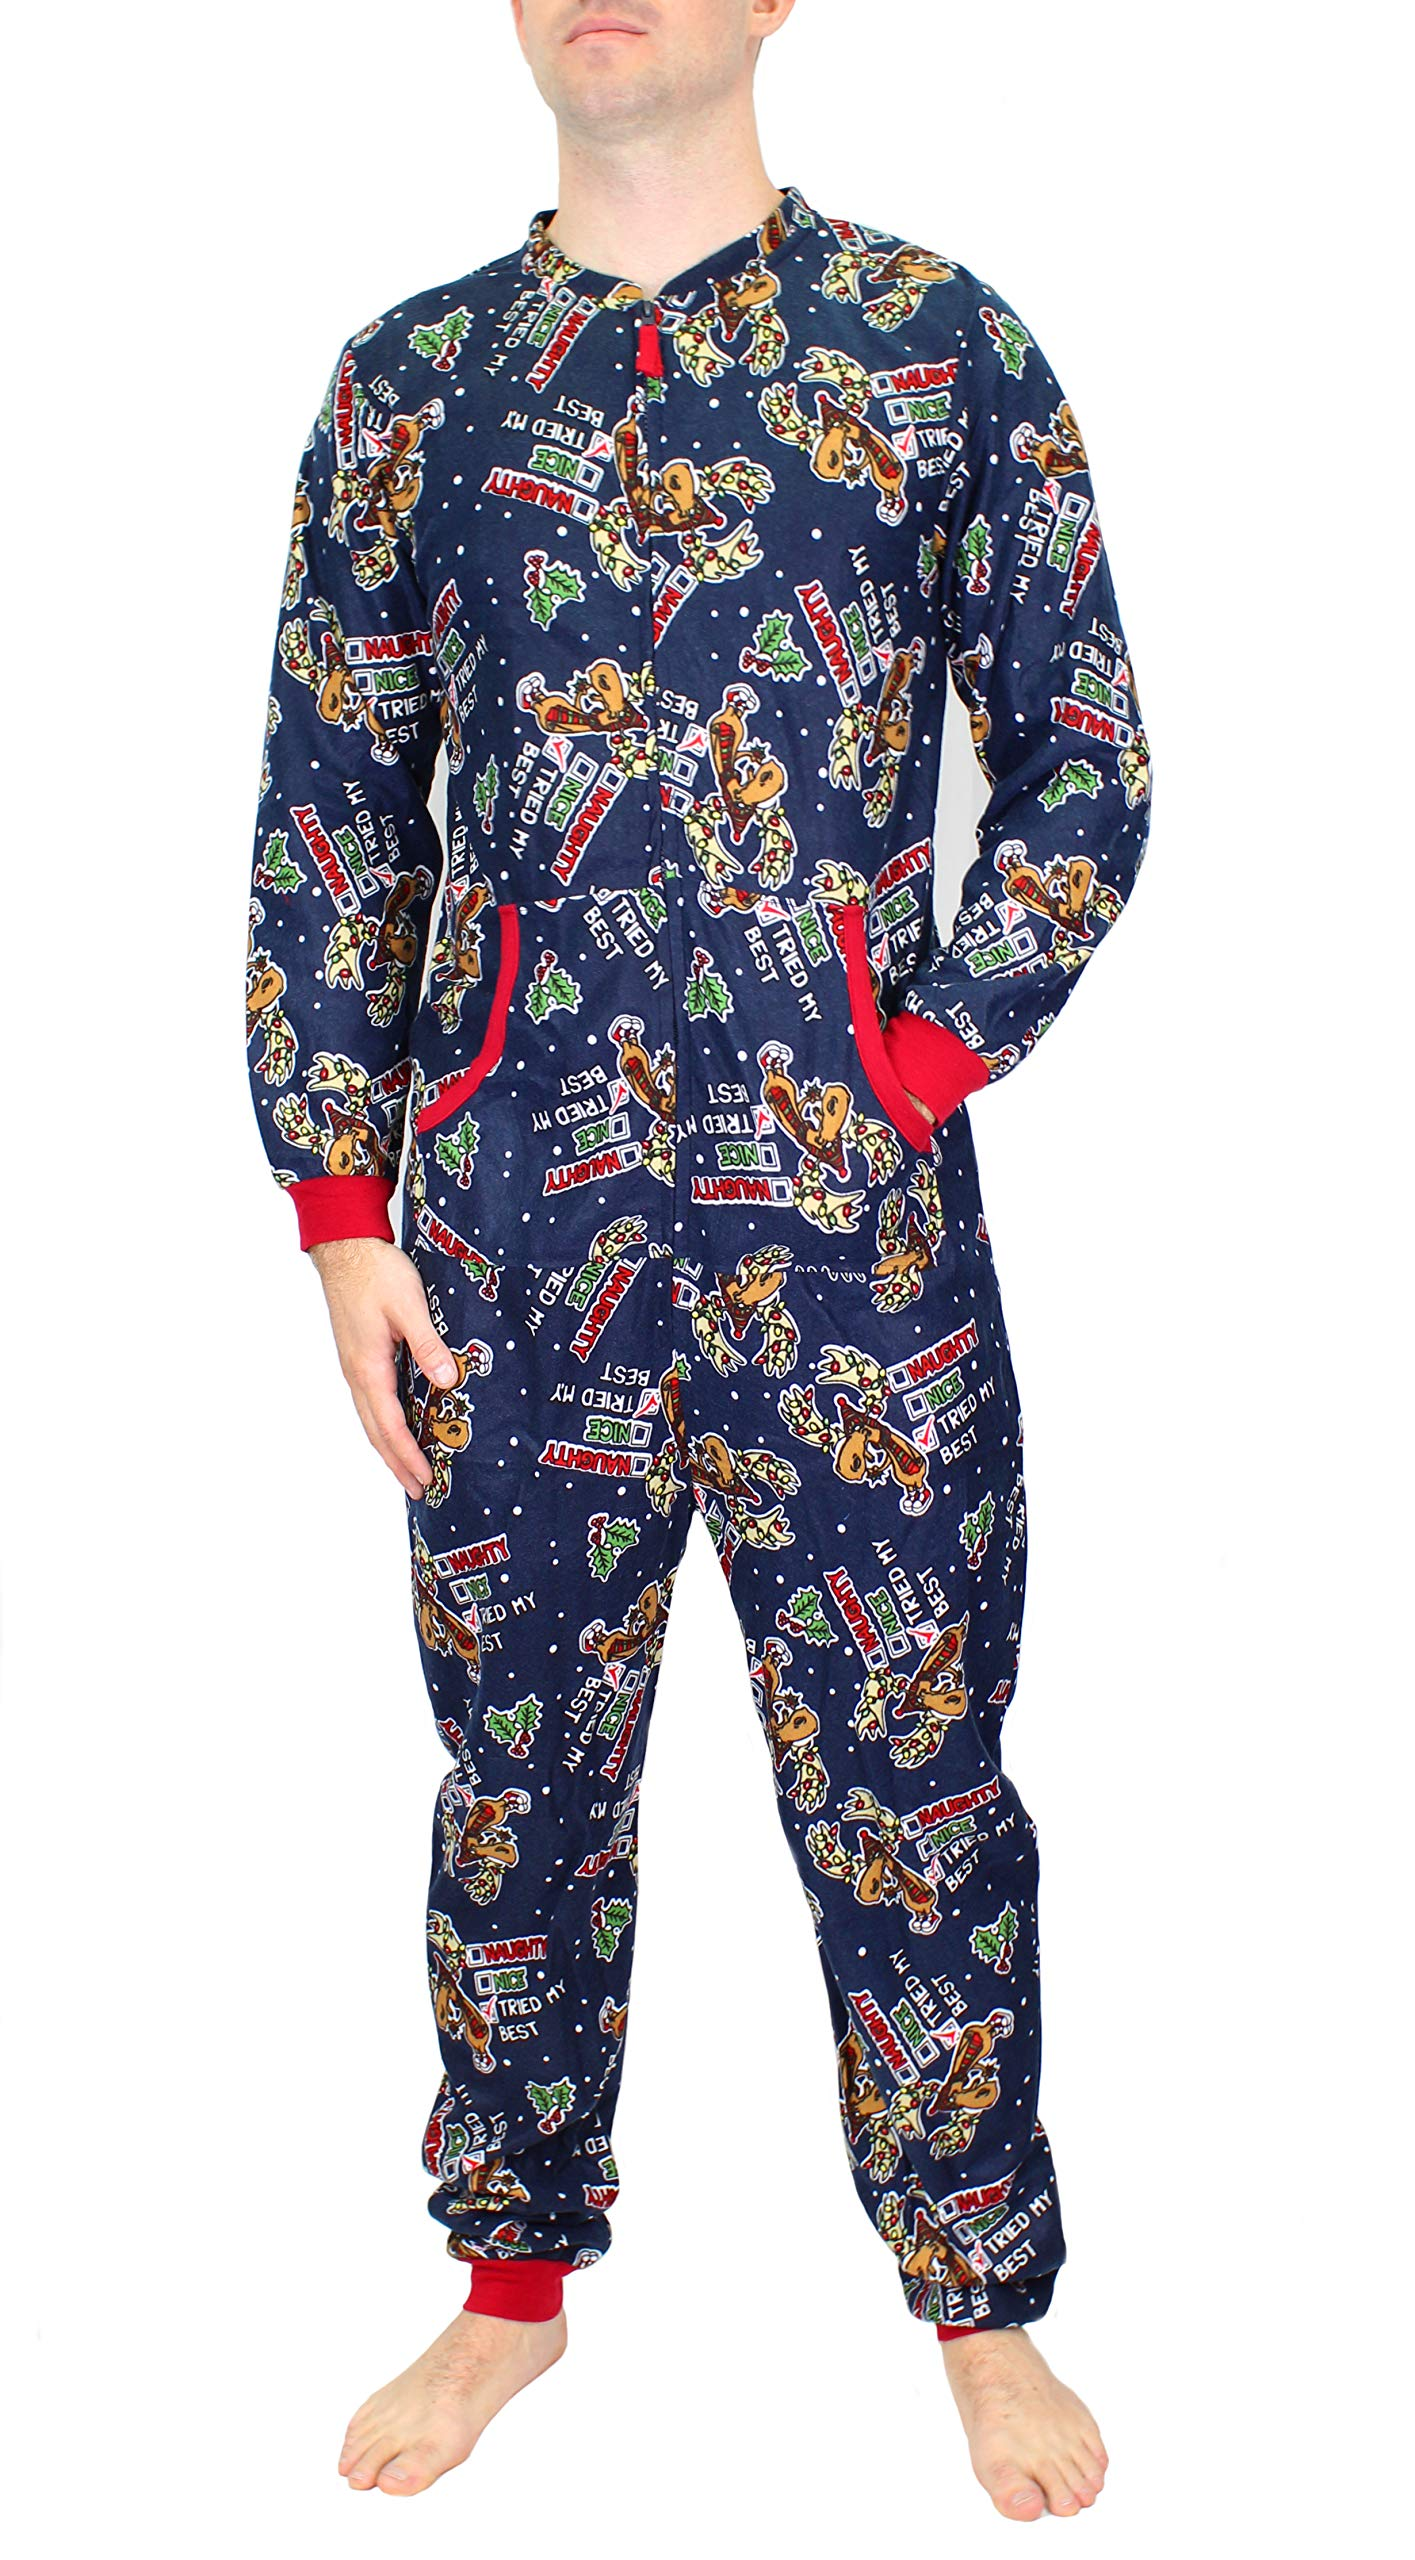 Wembley Unisex Adult Novelty One Piece Onesie Pajama Winter Holiday Union Suit (Navy Naughty Nice, S/M) by Wembley